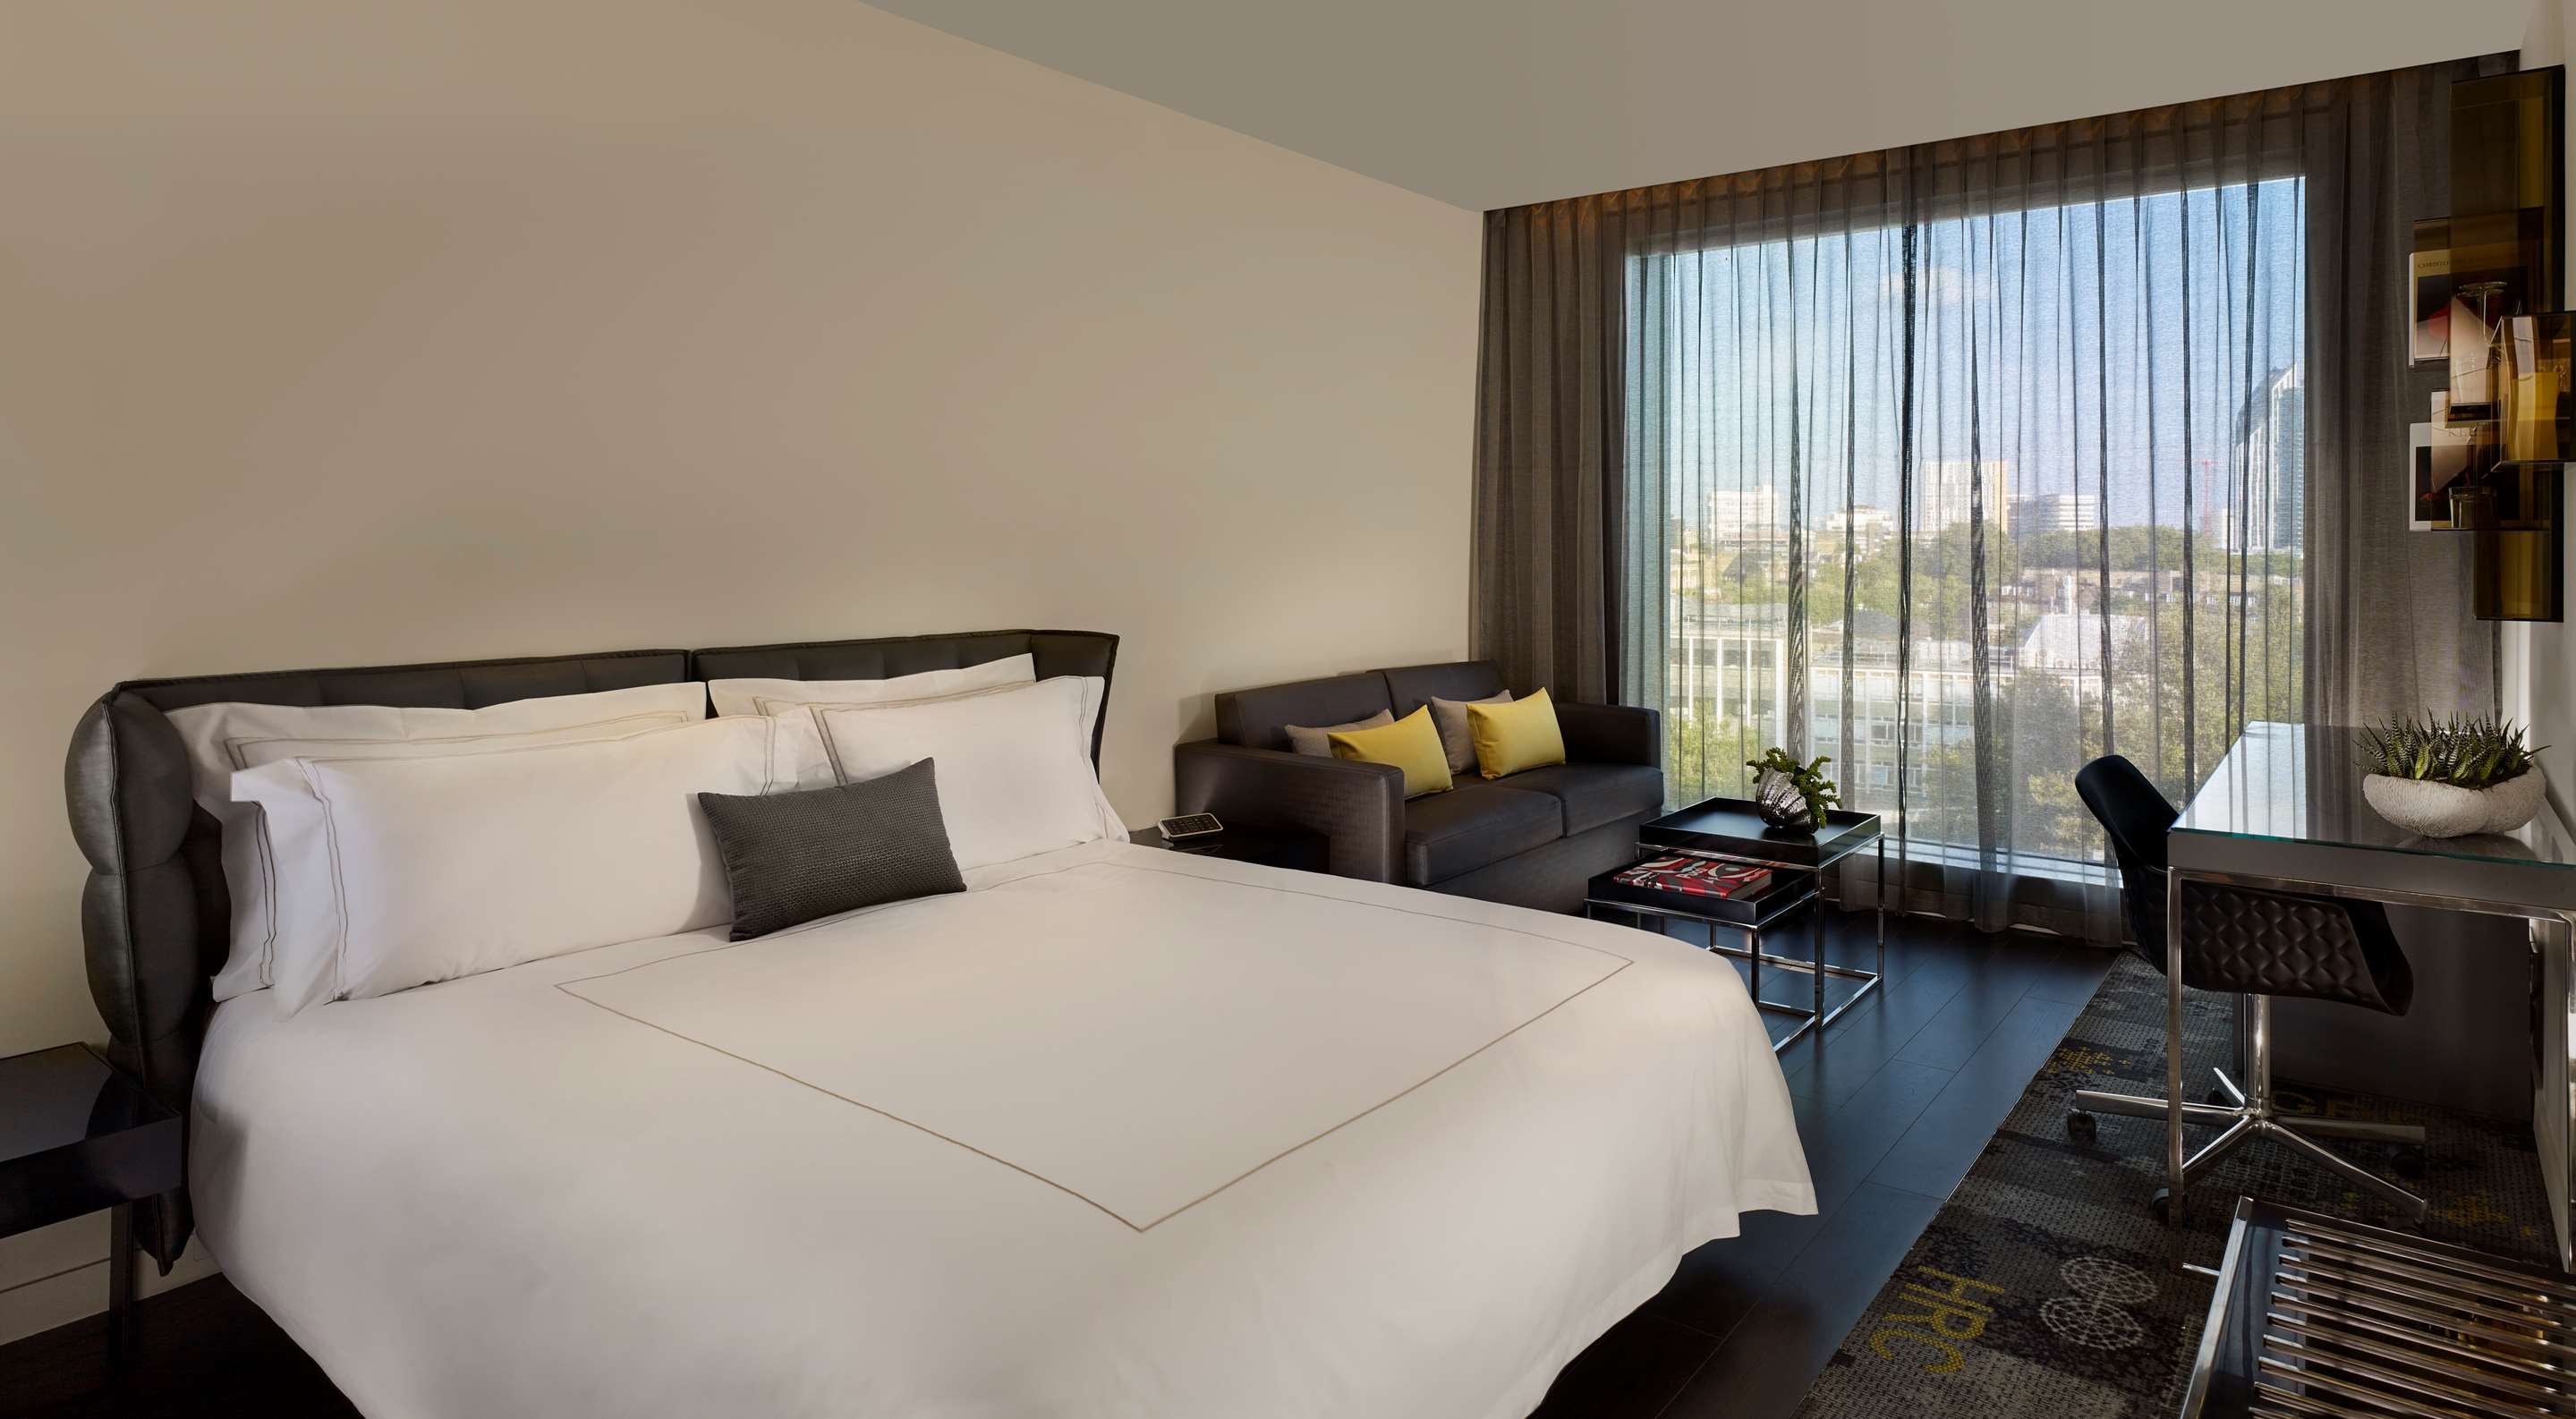 South Bank London Hotels | Park Plaza - Explore Hotel